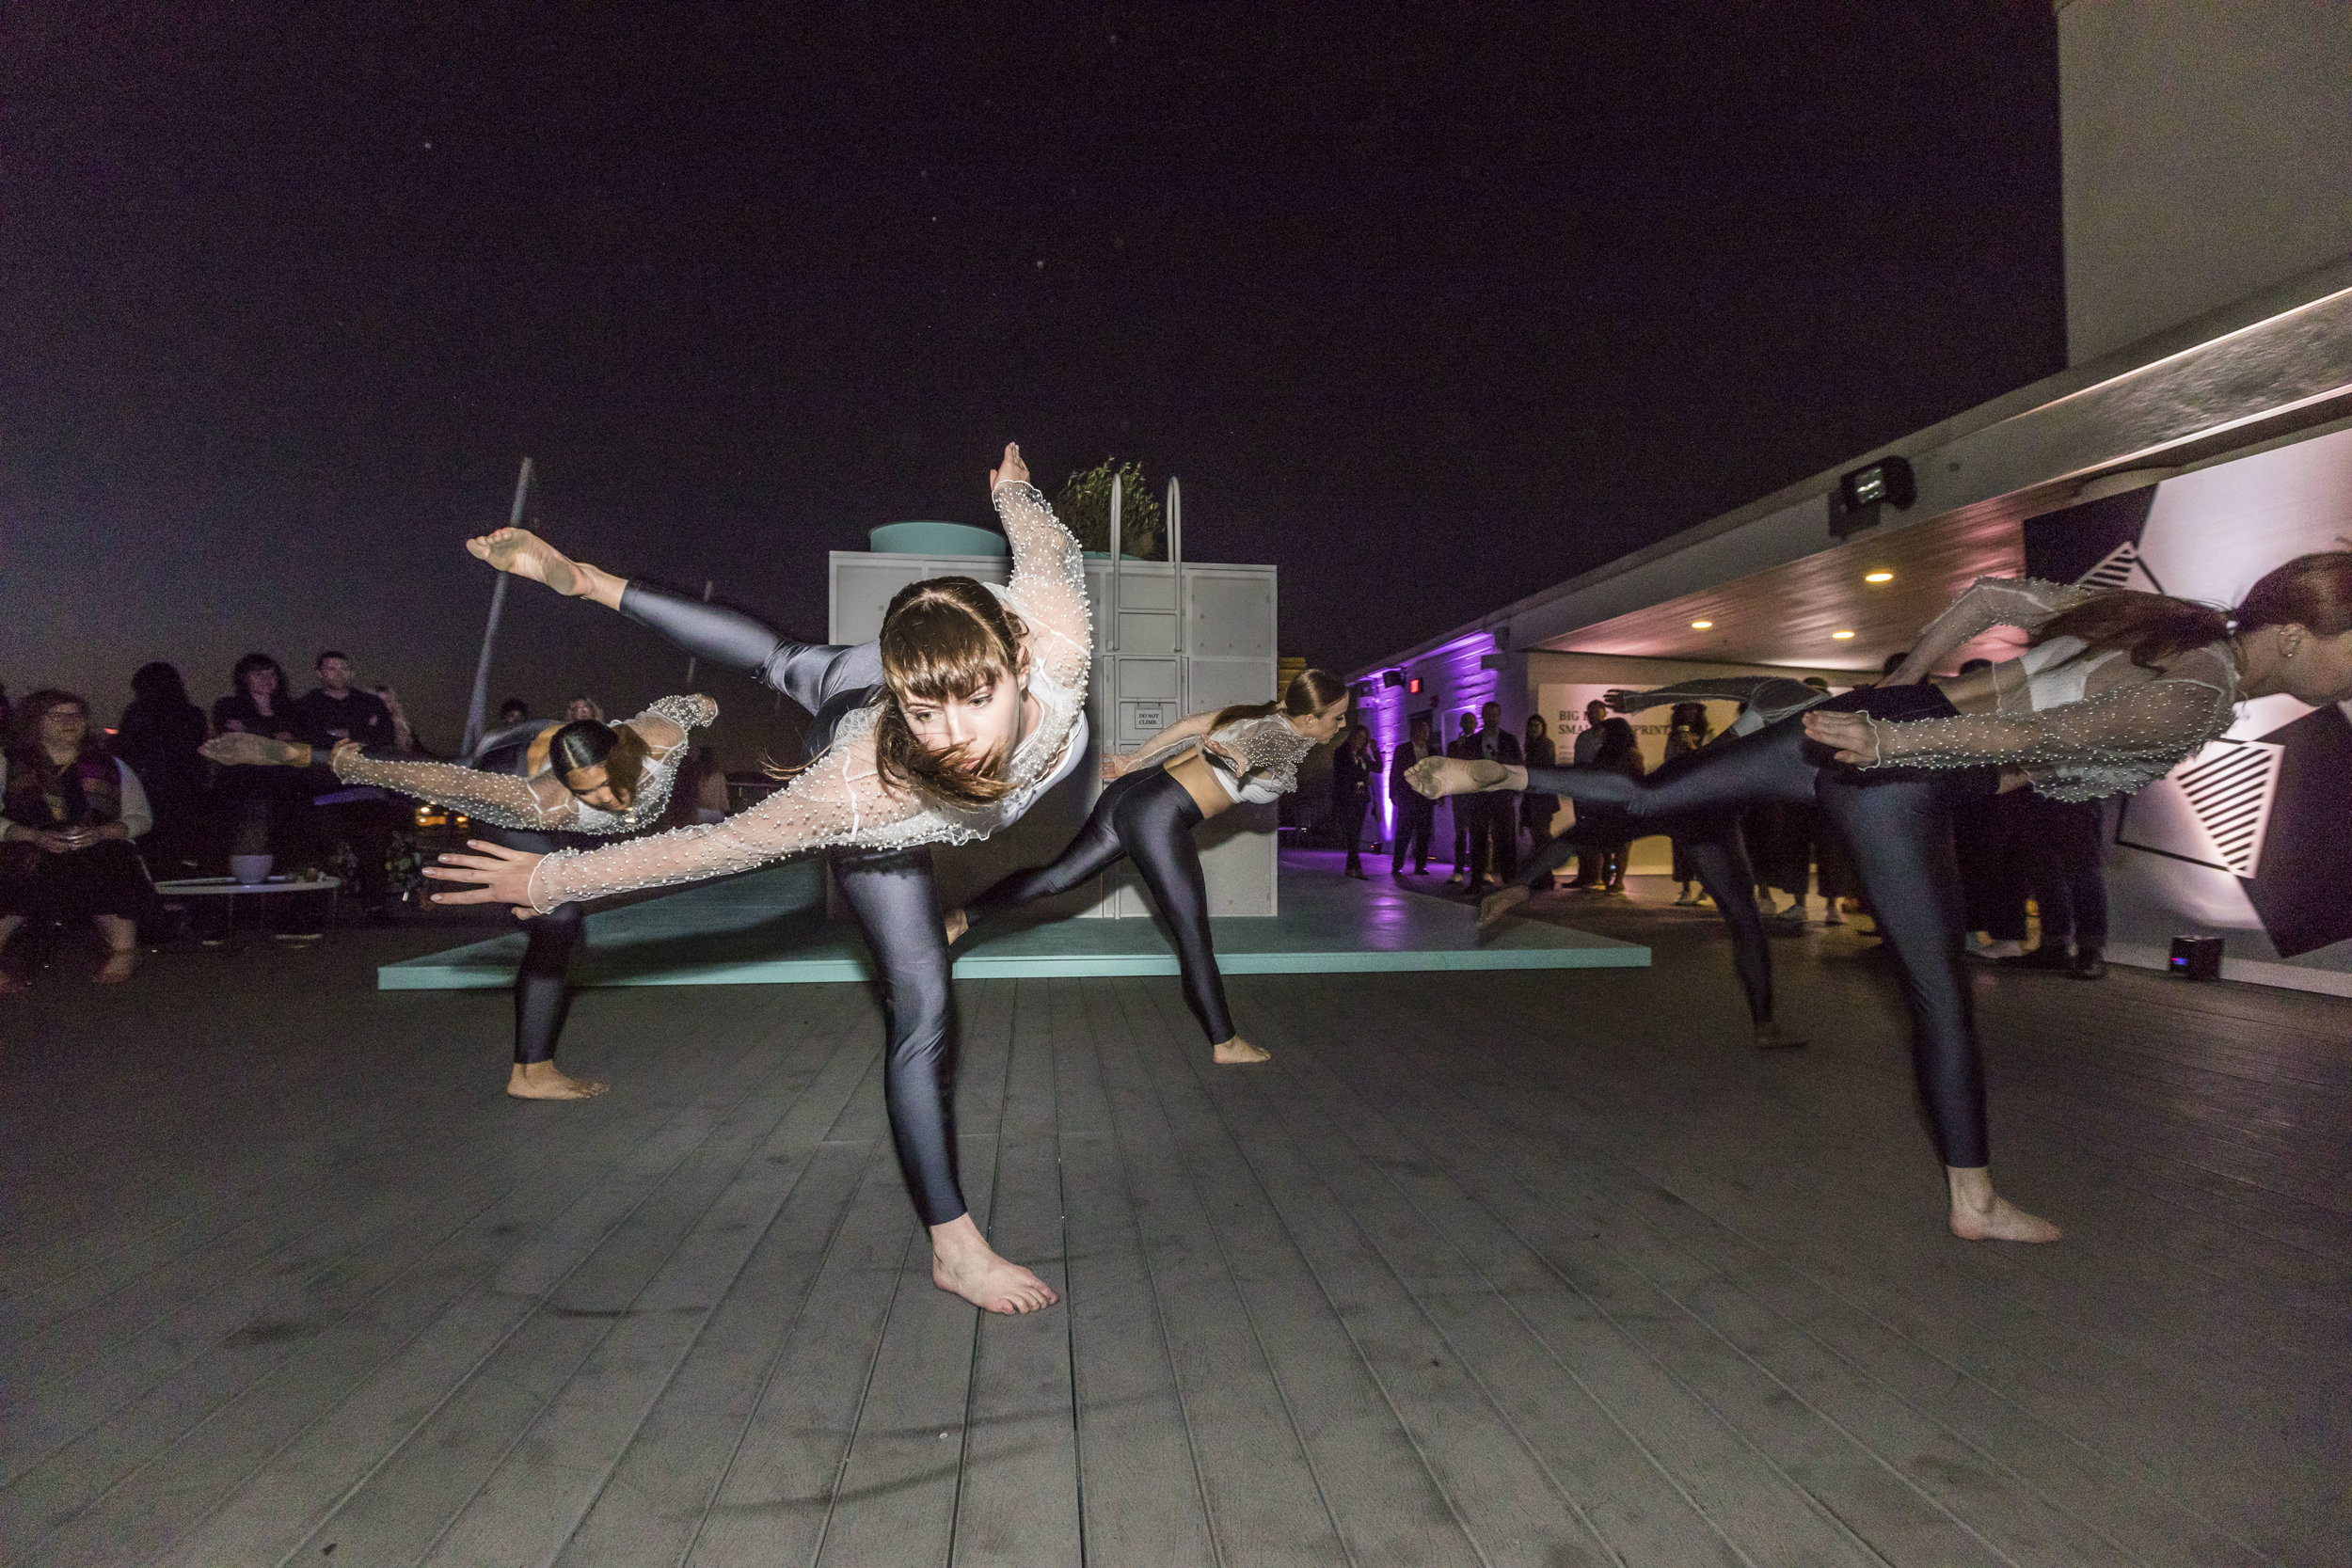 Performance by MashUp Contemporary Dance Company